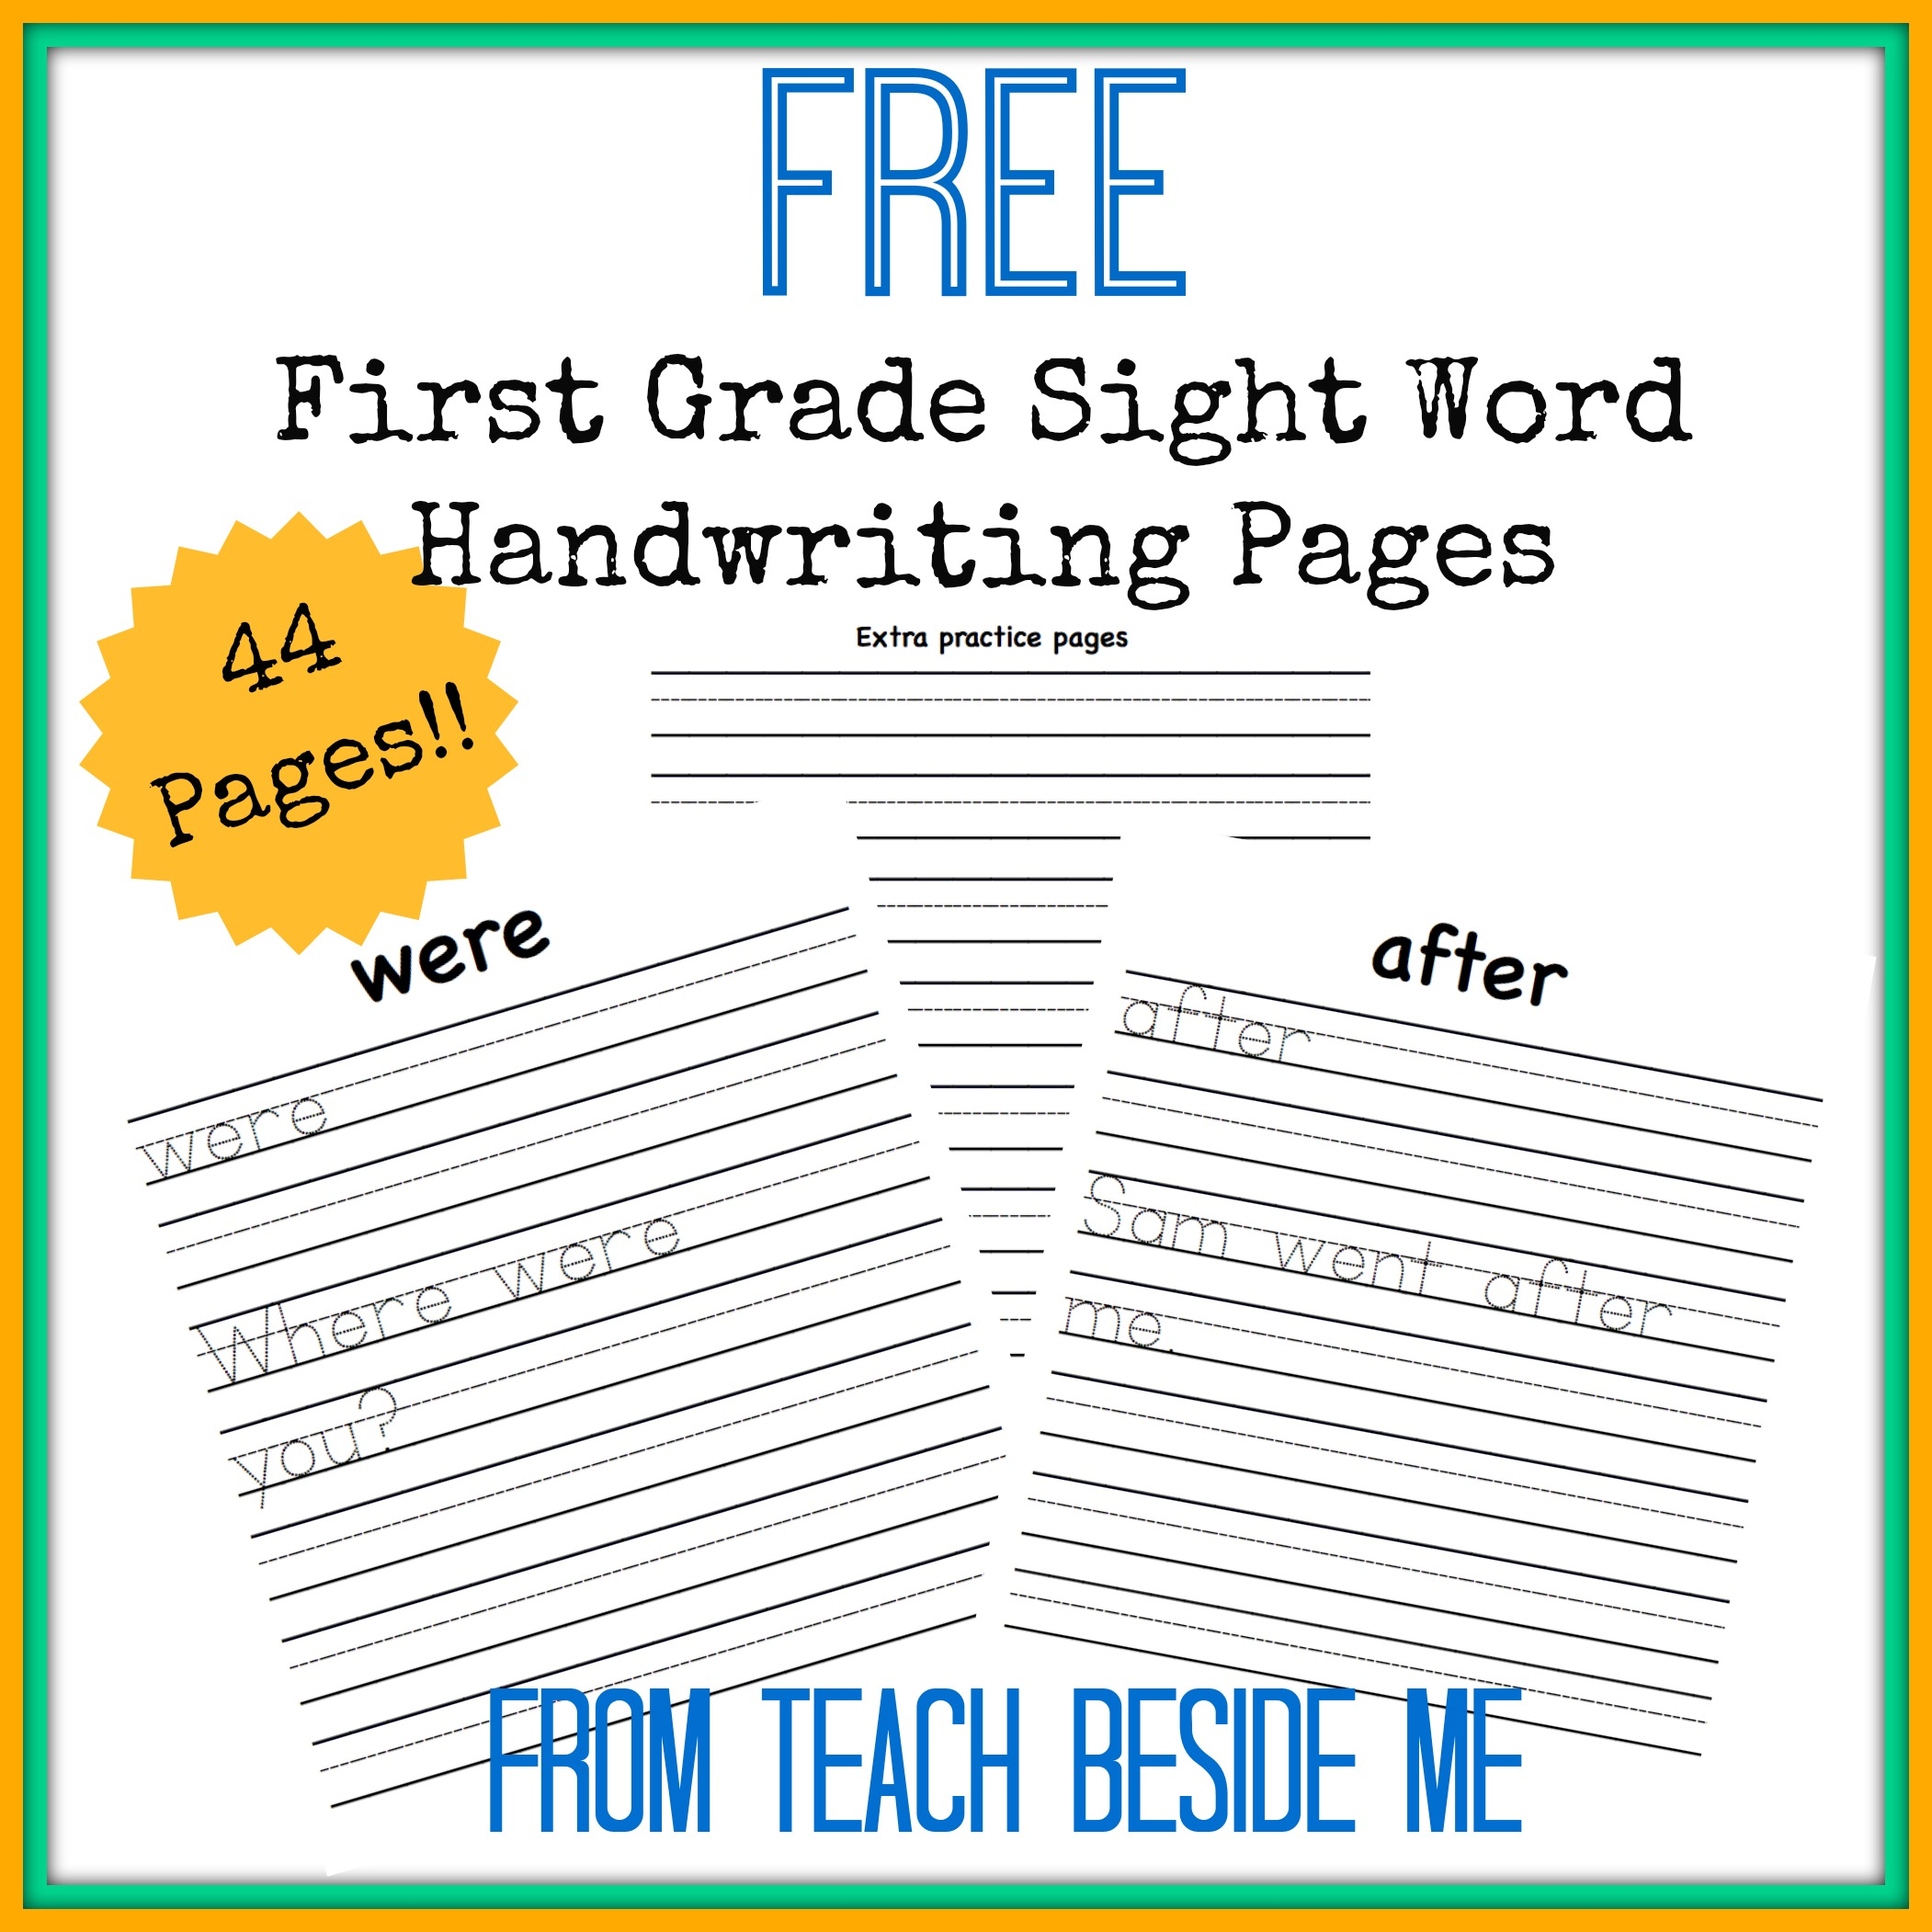 Free First Grade Sight Word Handwriting Pages | Free ...